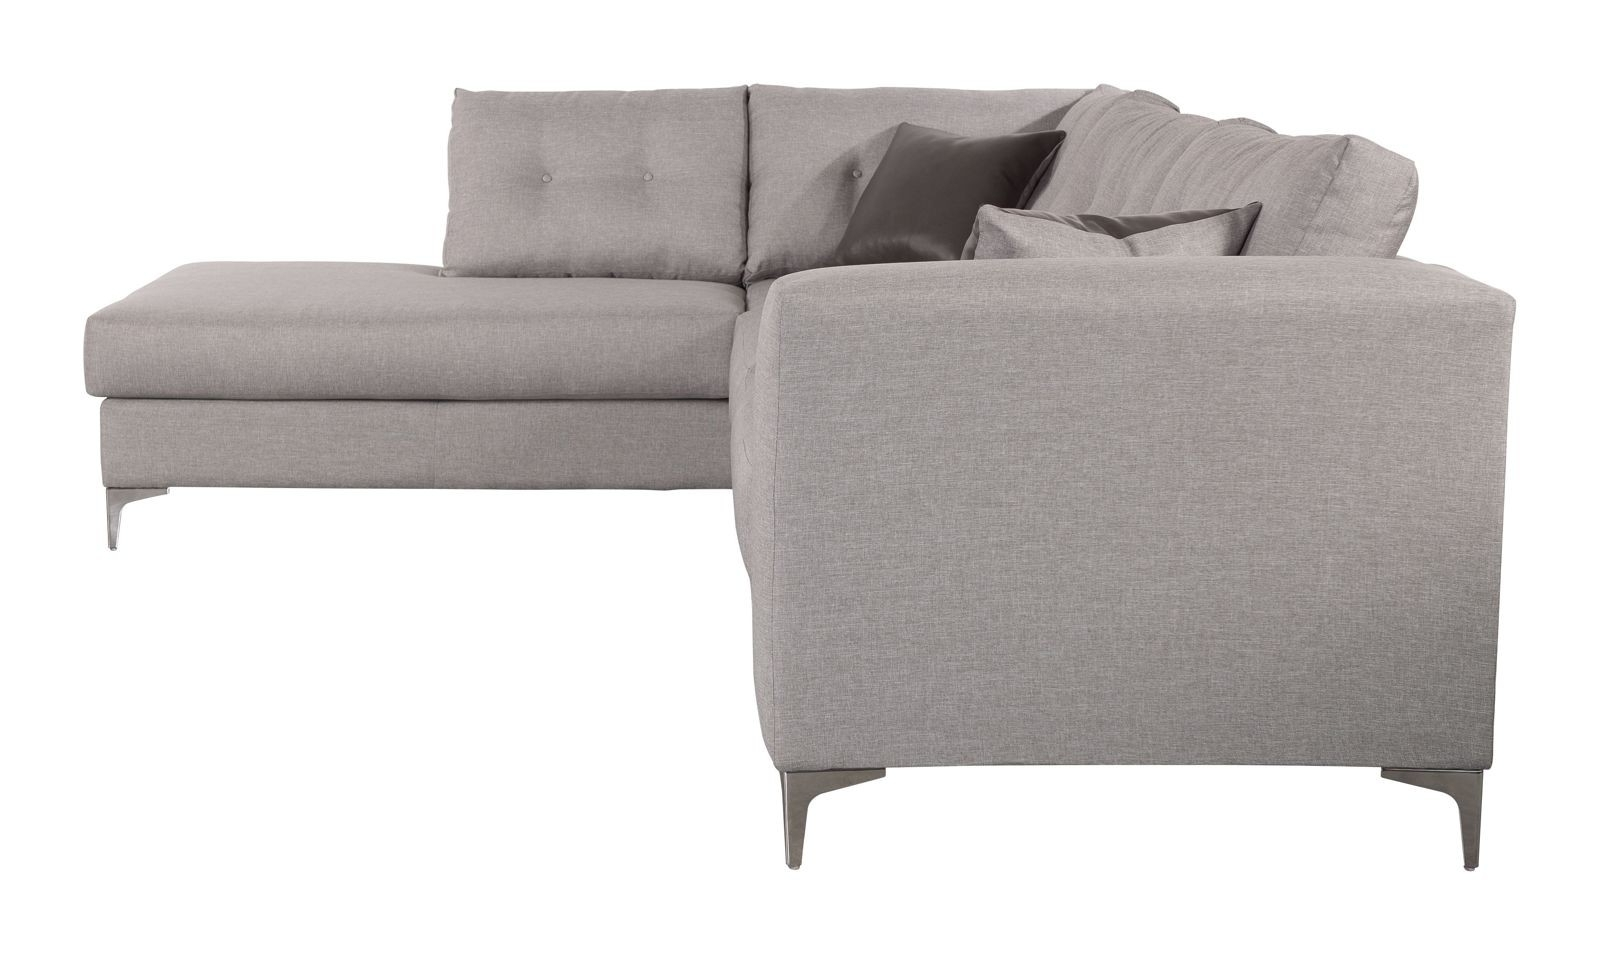 Cressina In Well Known Memphis Sectional Sofas (View 4 of 15)